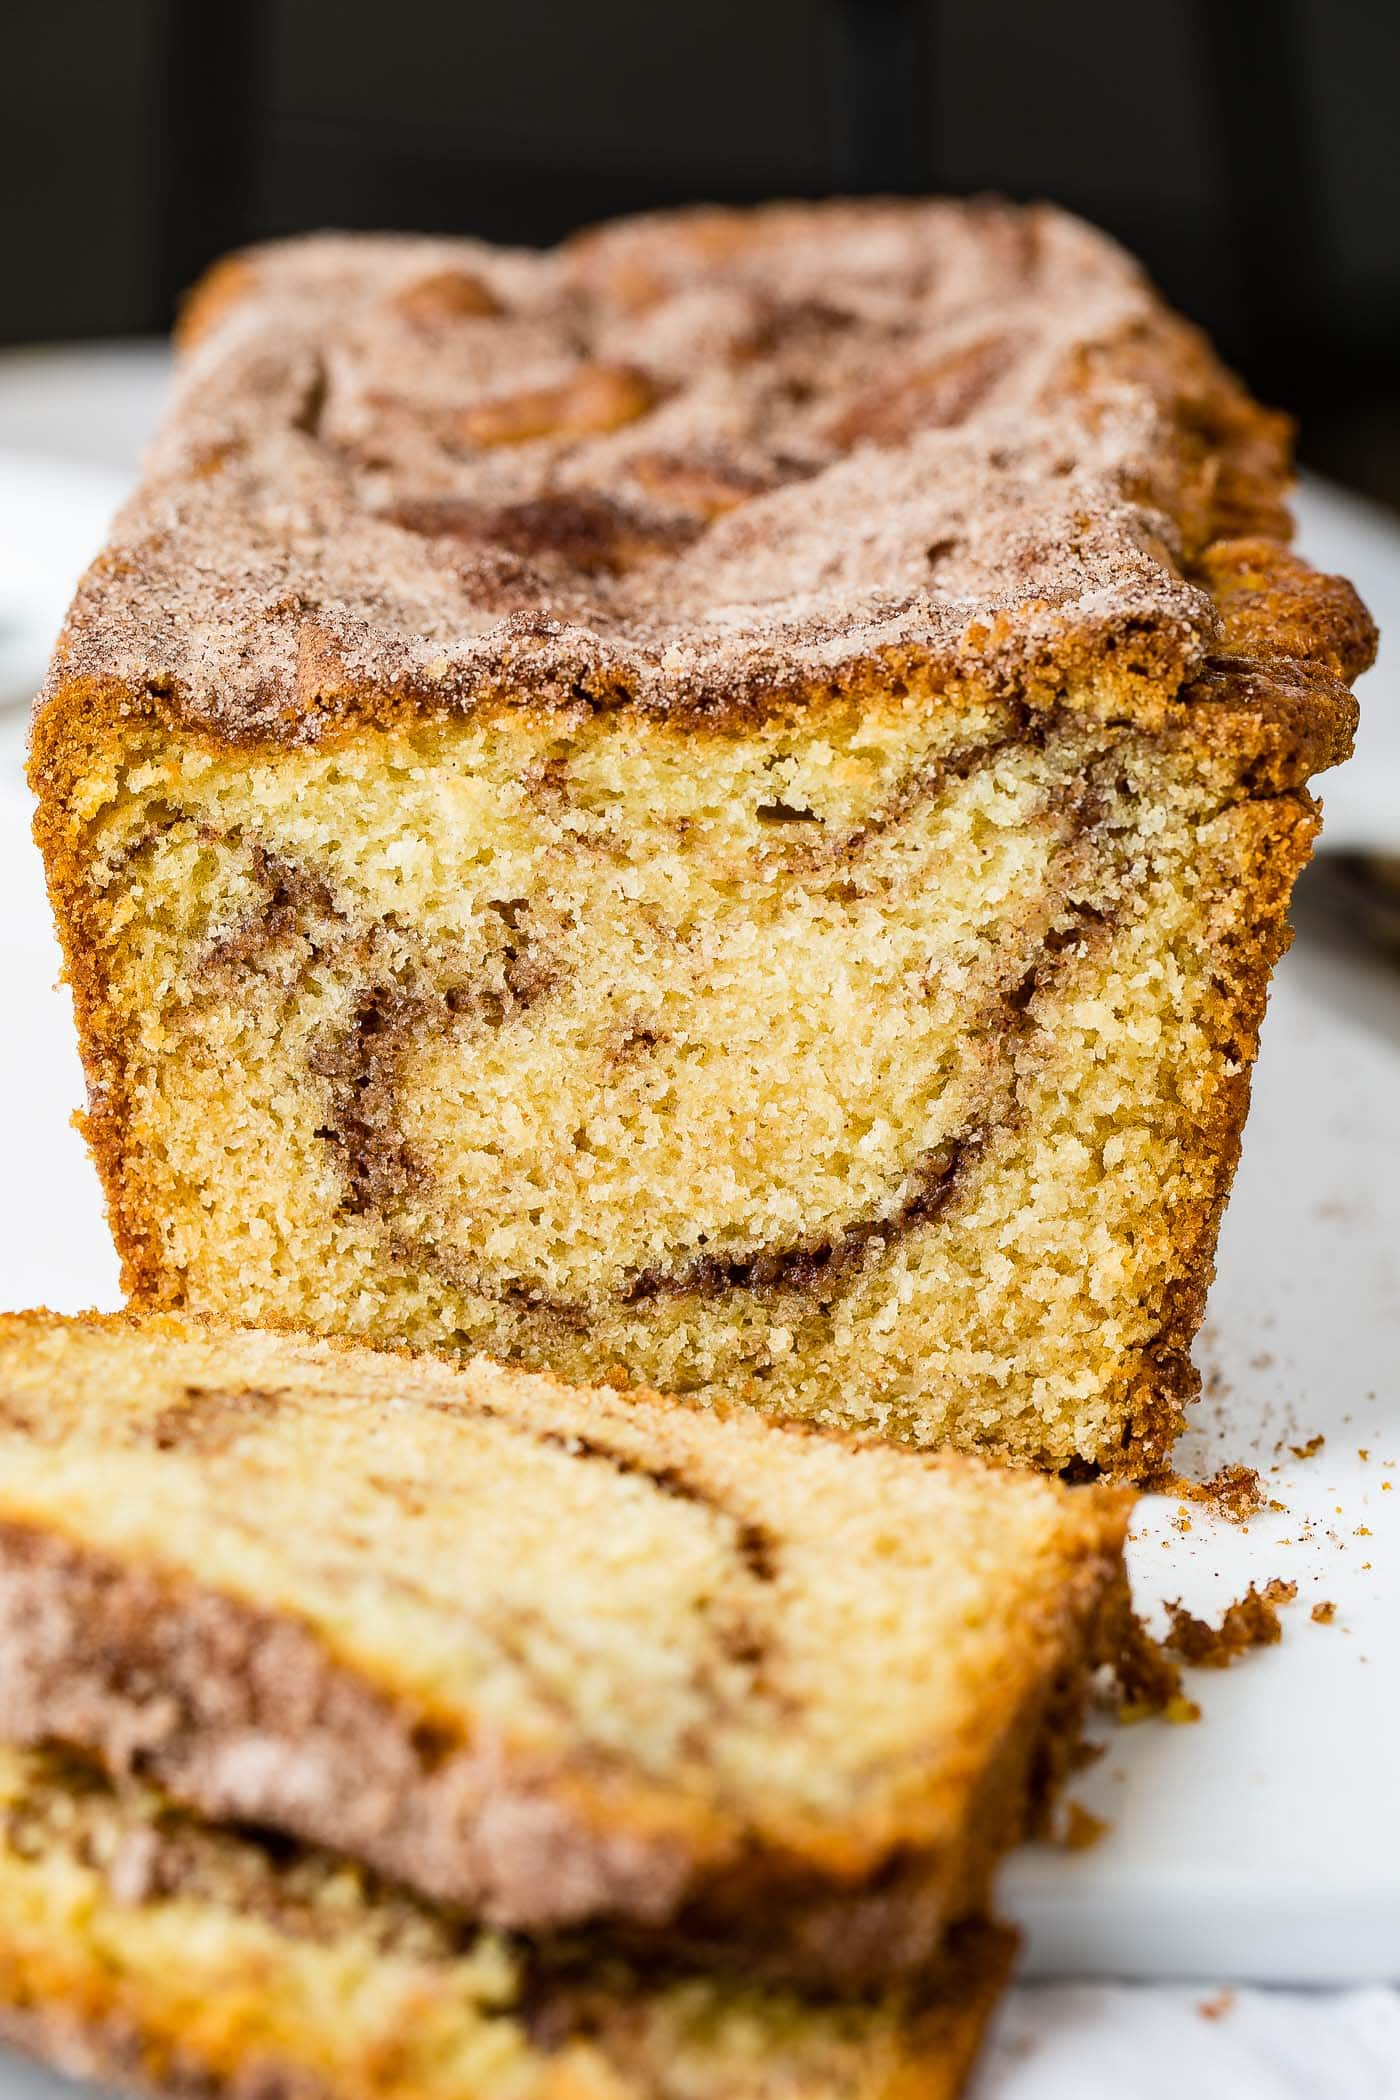 A loaf of snickerdoodle bread that has been partially sliced. There is a swirl of cinnamon sugar in the bread.